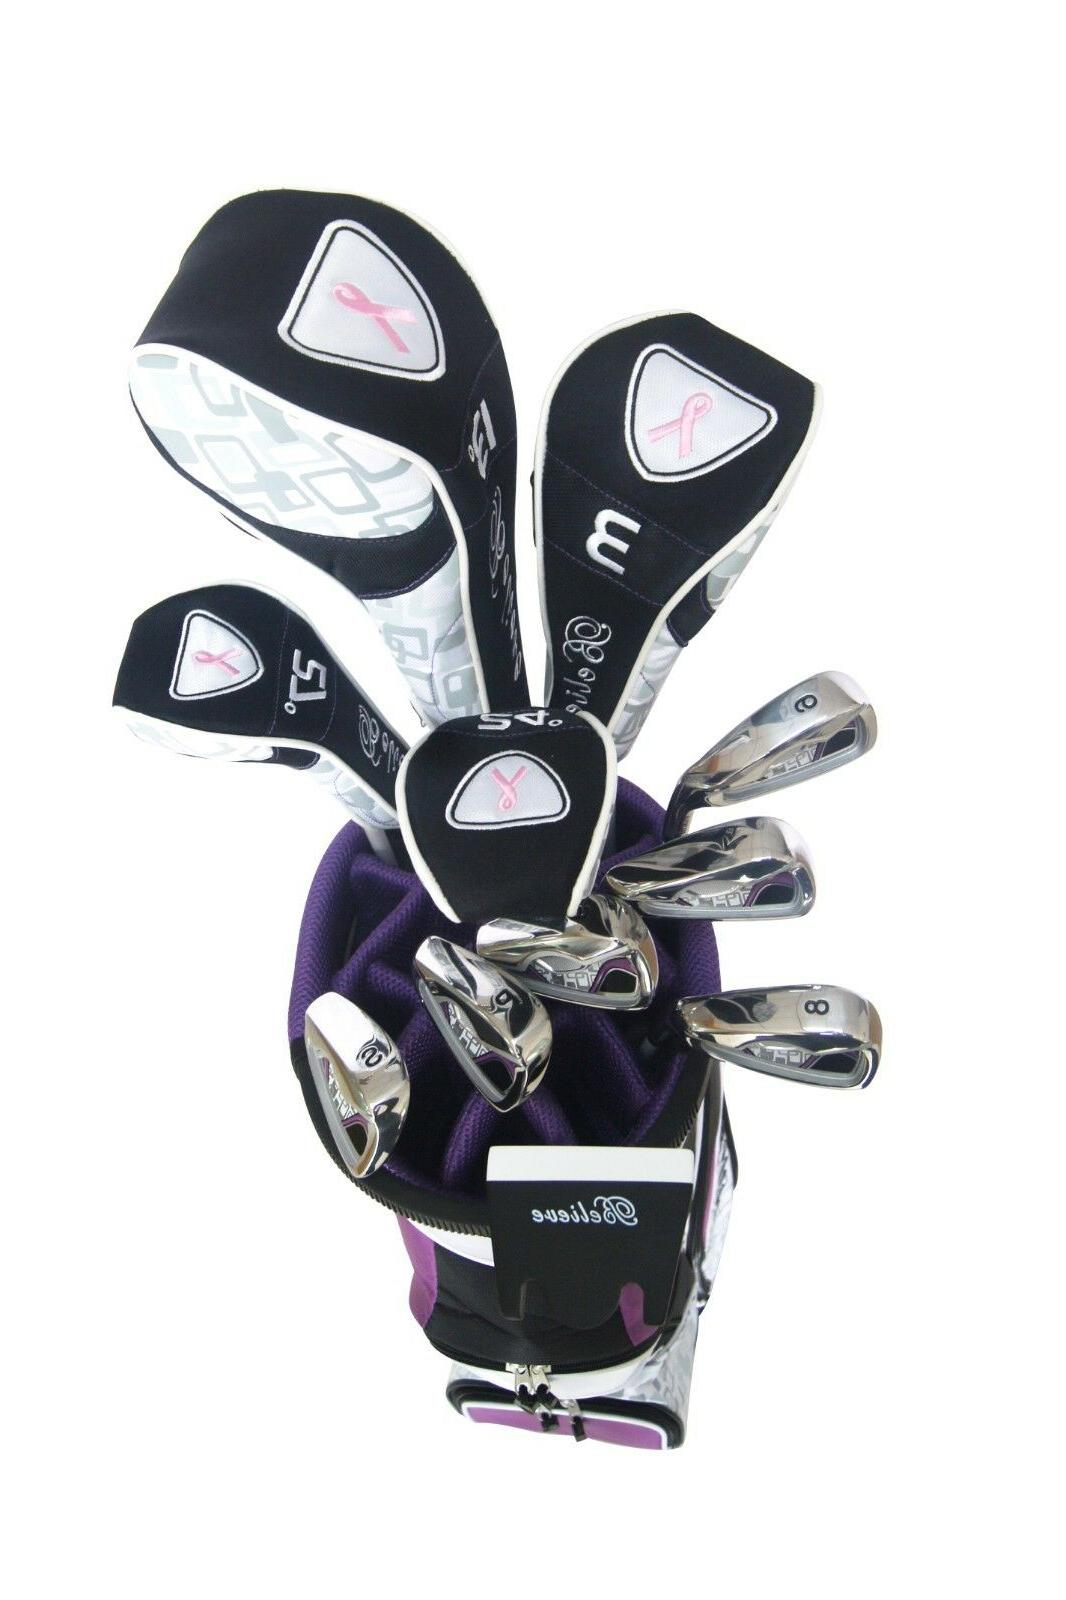 Founders Womens Complete Club Set with Bag,